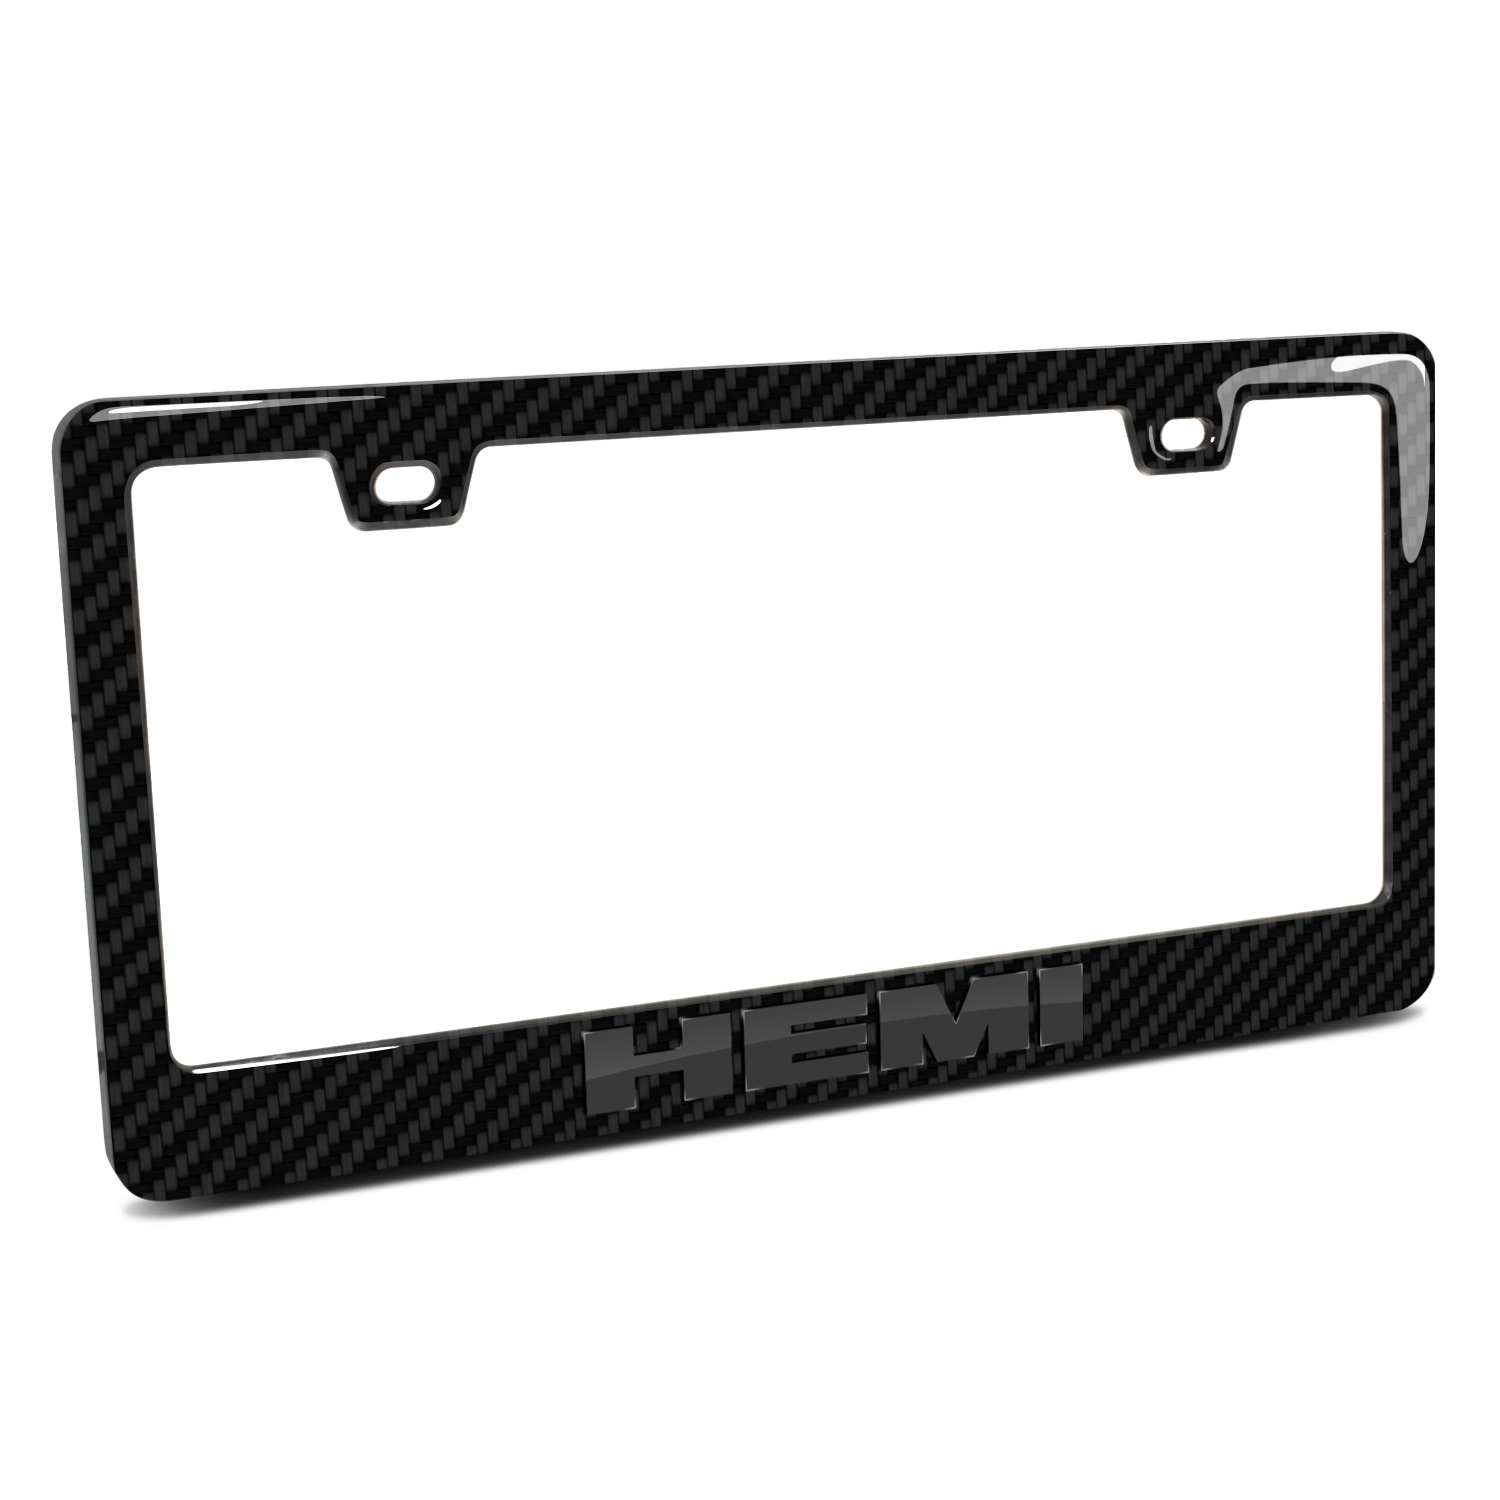 HEMI Logo in 3D Black on Black Real 3K Carbon Fiber Finish ABS Plastic License Plate Frame